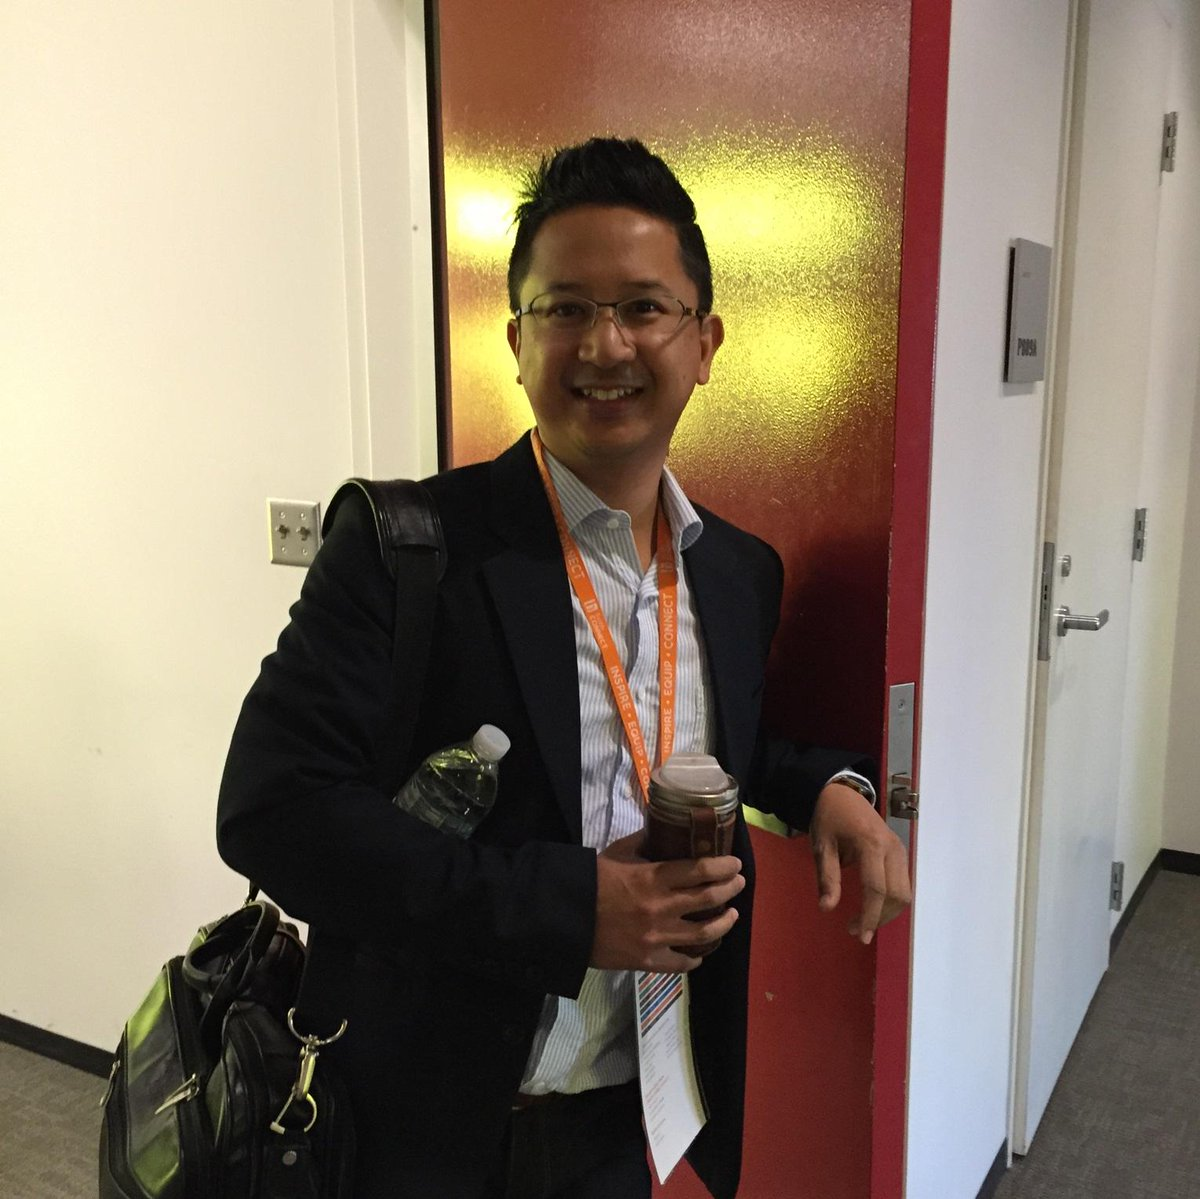 Happening Now at #bushCON: Mu's Randy Reyes shares his story of successes and challenges in Asian American theater. http://t.co/EY6qWEqNrx